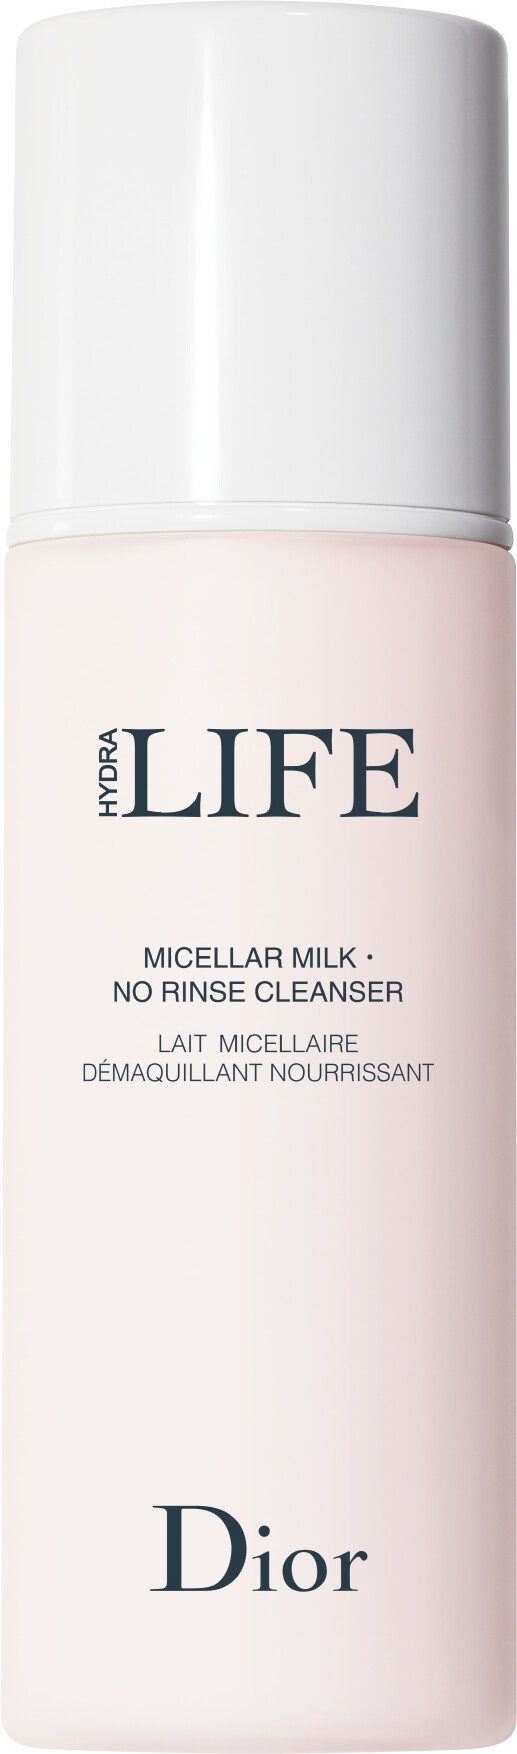 Dior HYDRA LIFE Micellar Milk · No Rinse Cleanser 200ml